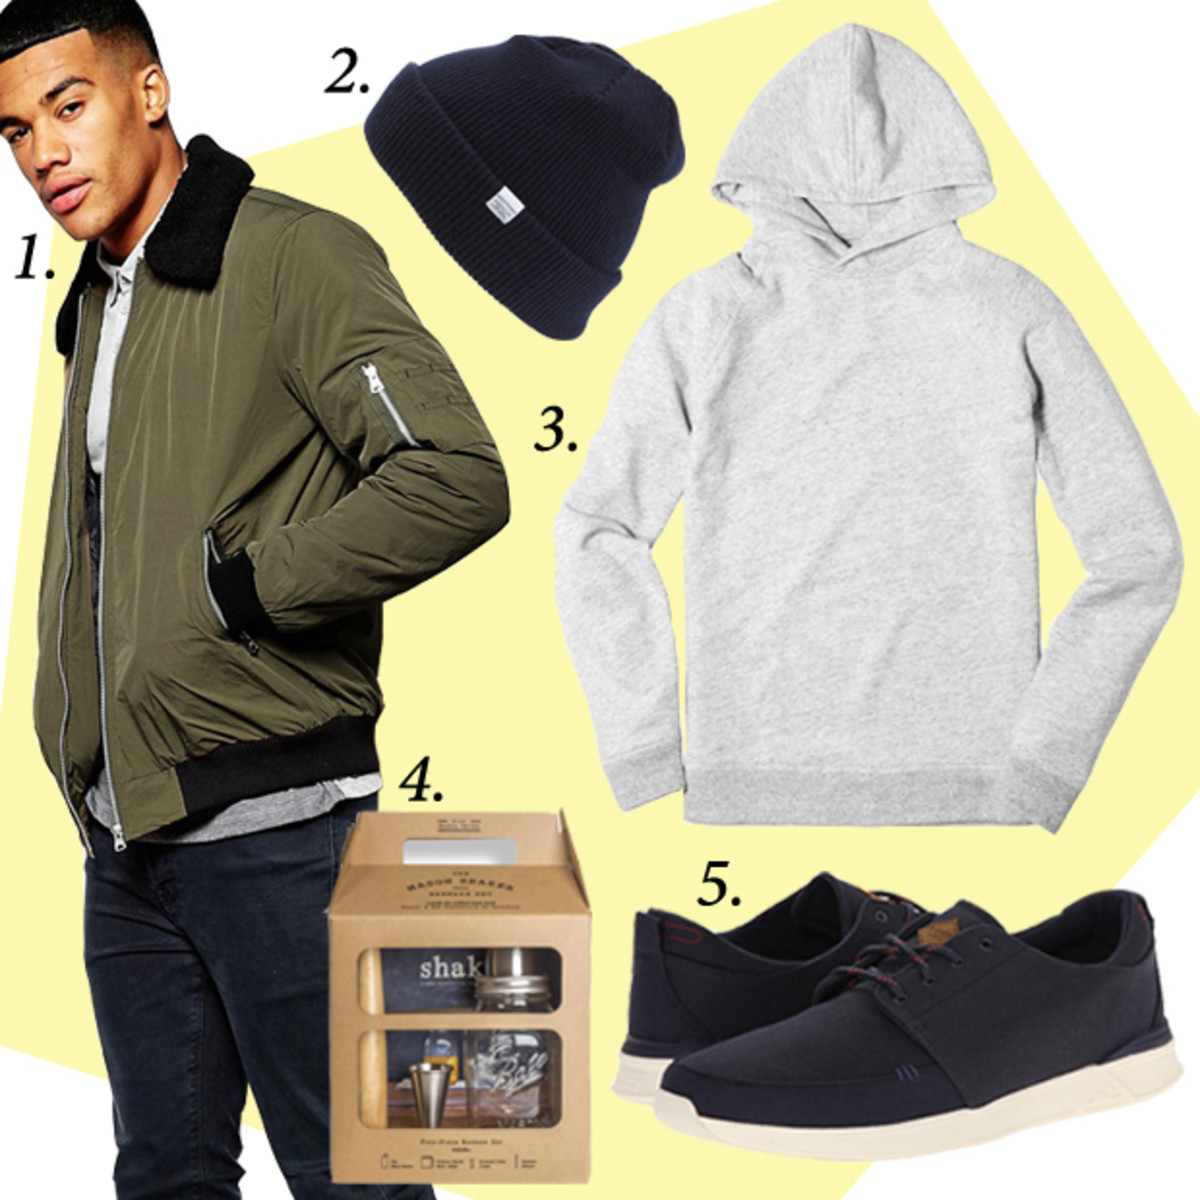 1. ASOS Harrington Jacket with Removable Faux-Shearling Collar, $89.58, available at Asos.com. 2. Norse Projects Merino Wool Beanie, $55, available at Nordstrom.com. 3. Everlane Pullover Hoodie Sweatshirt, $58, available at Everlane.com. 4. W&P Design The Barware Set with Shake Book, $69, available at Fab.com. 5. Reef Rover Low, $70, available at Zappos.com.